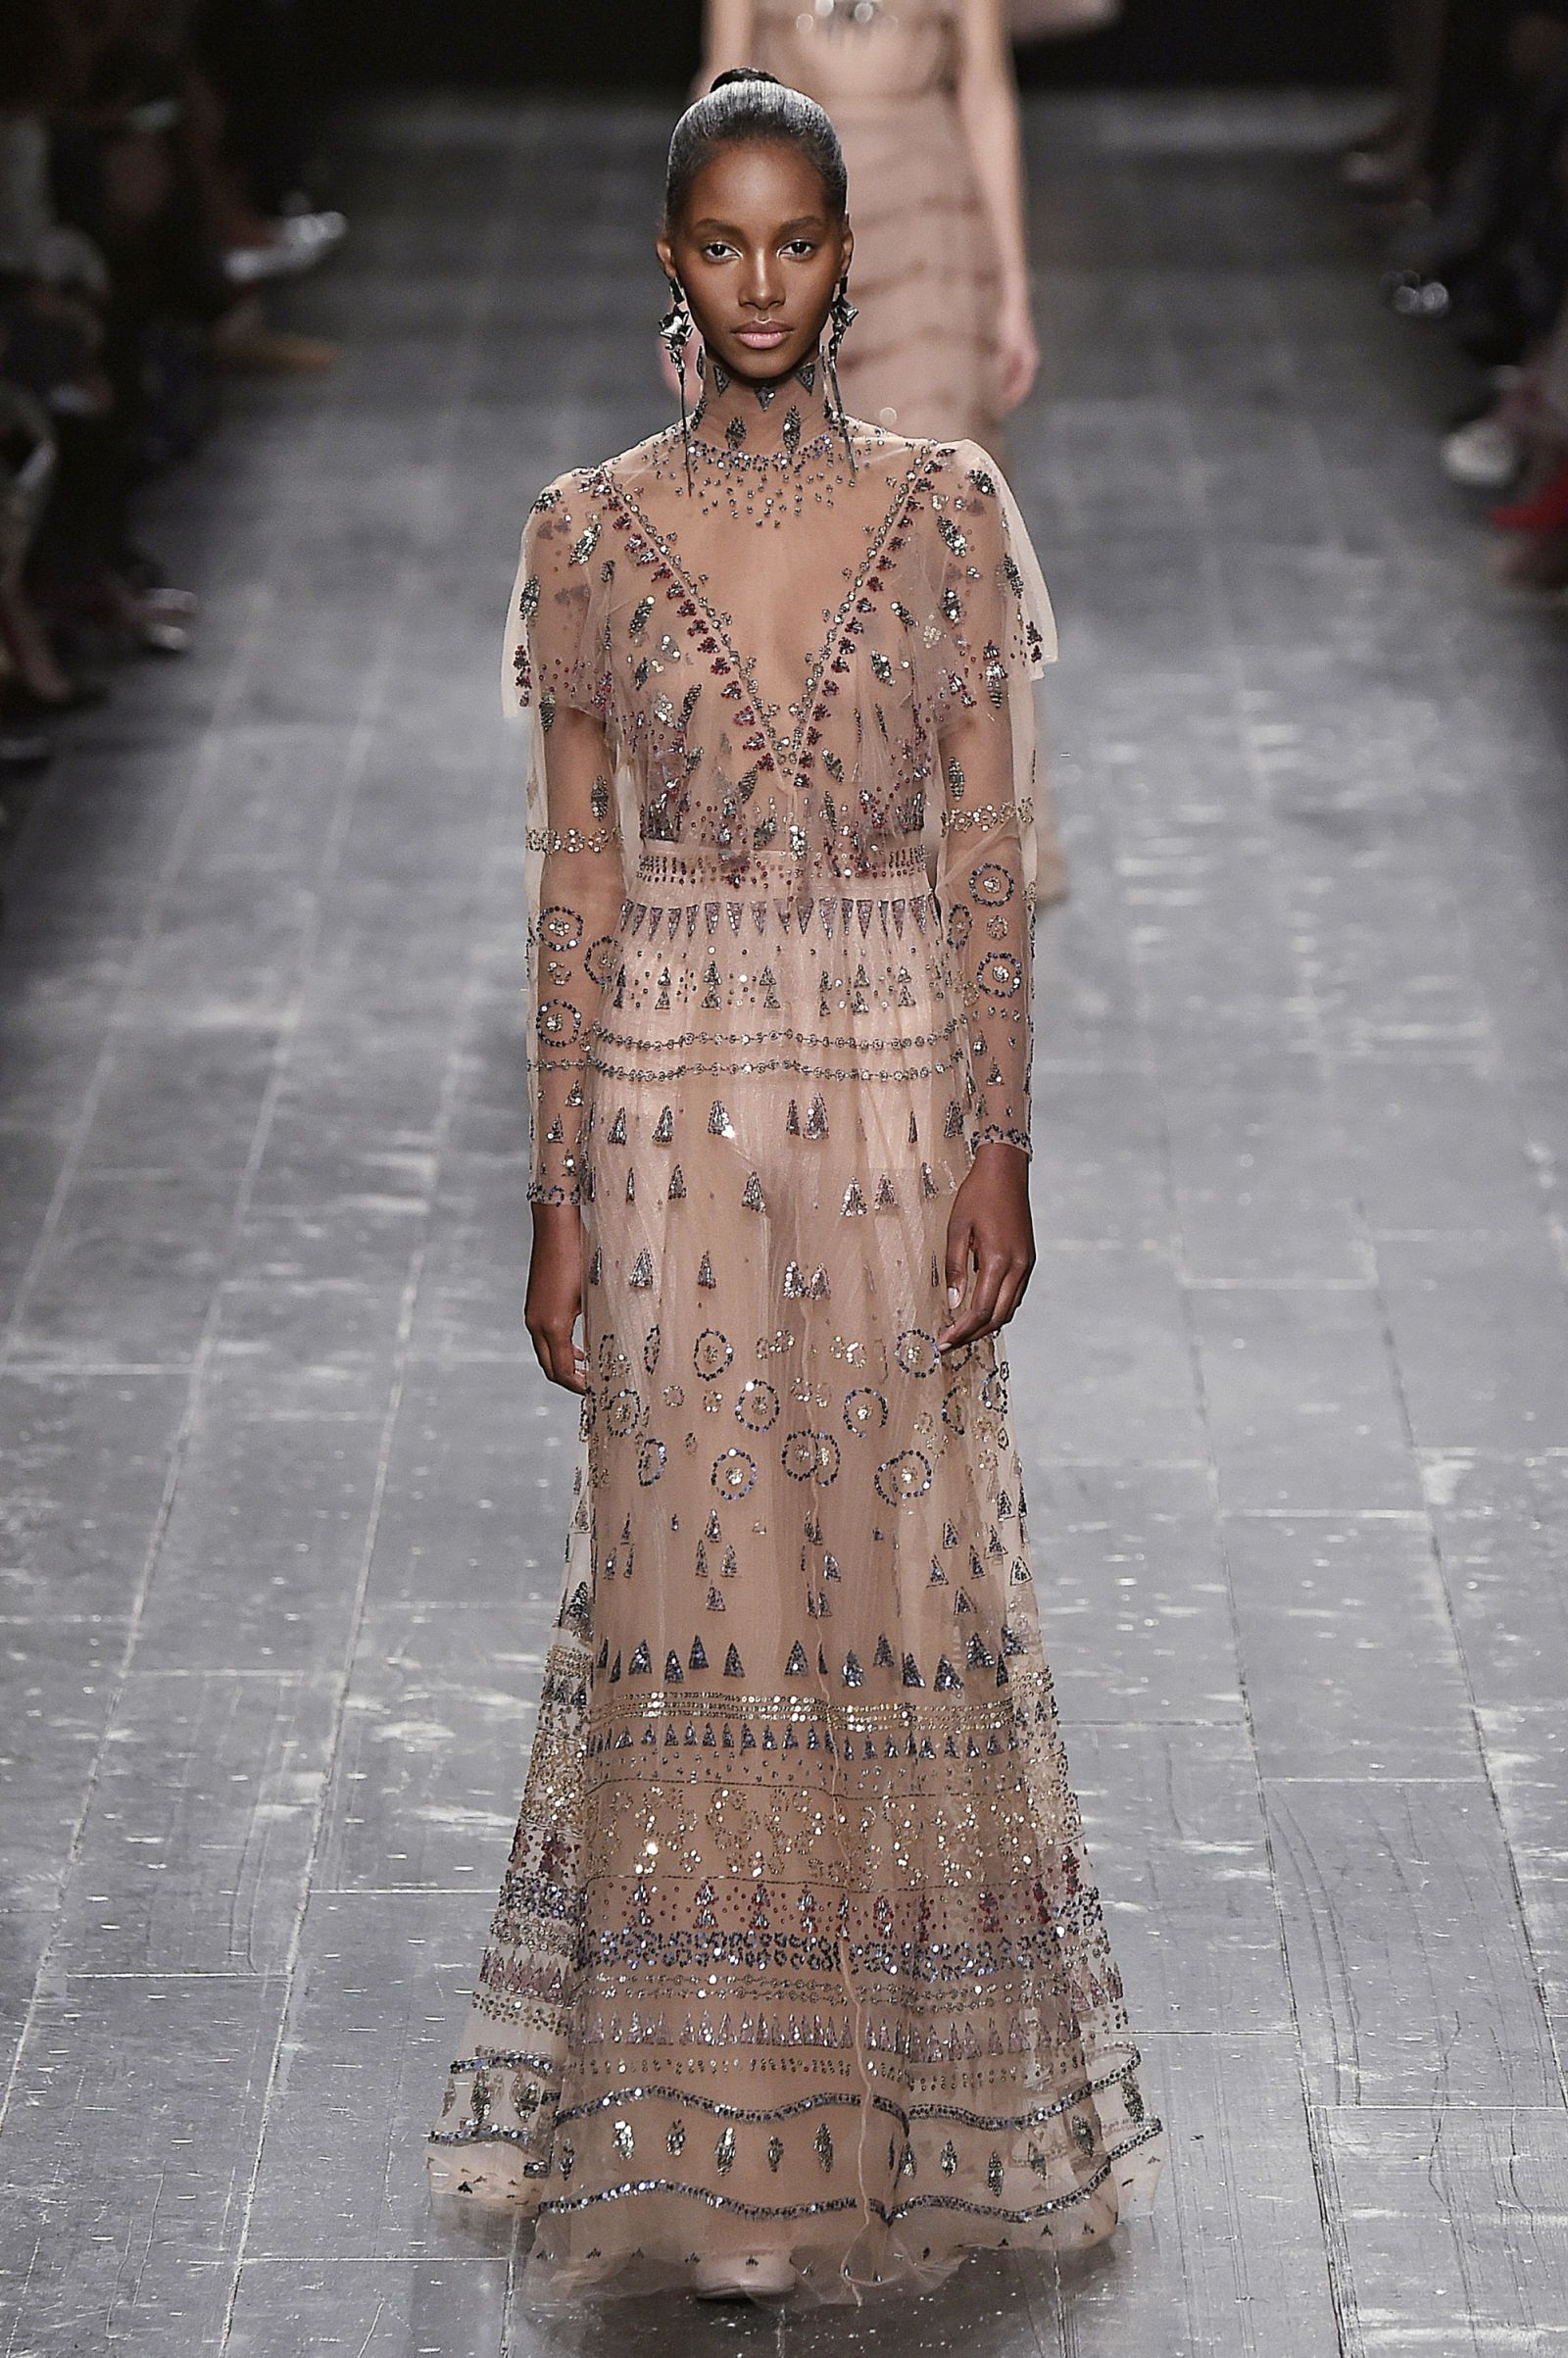 Dianna agron wedding dress  You Have to See Dianna Agronus  Valentino Wedding Dress